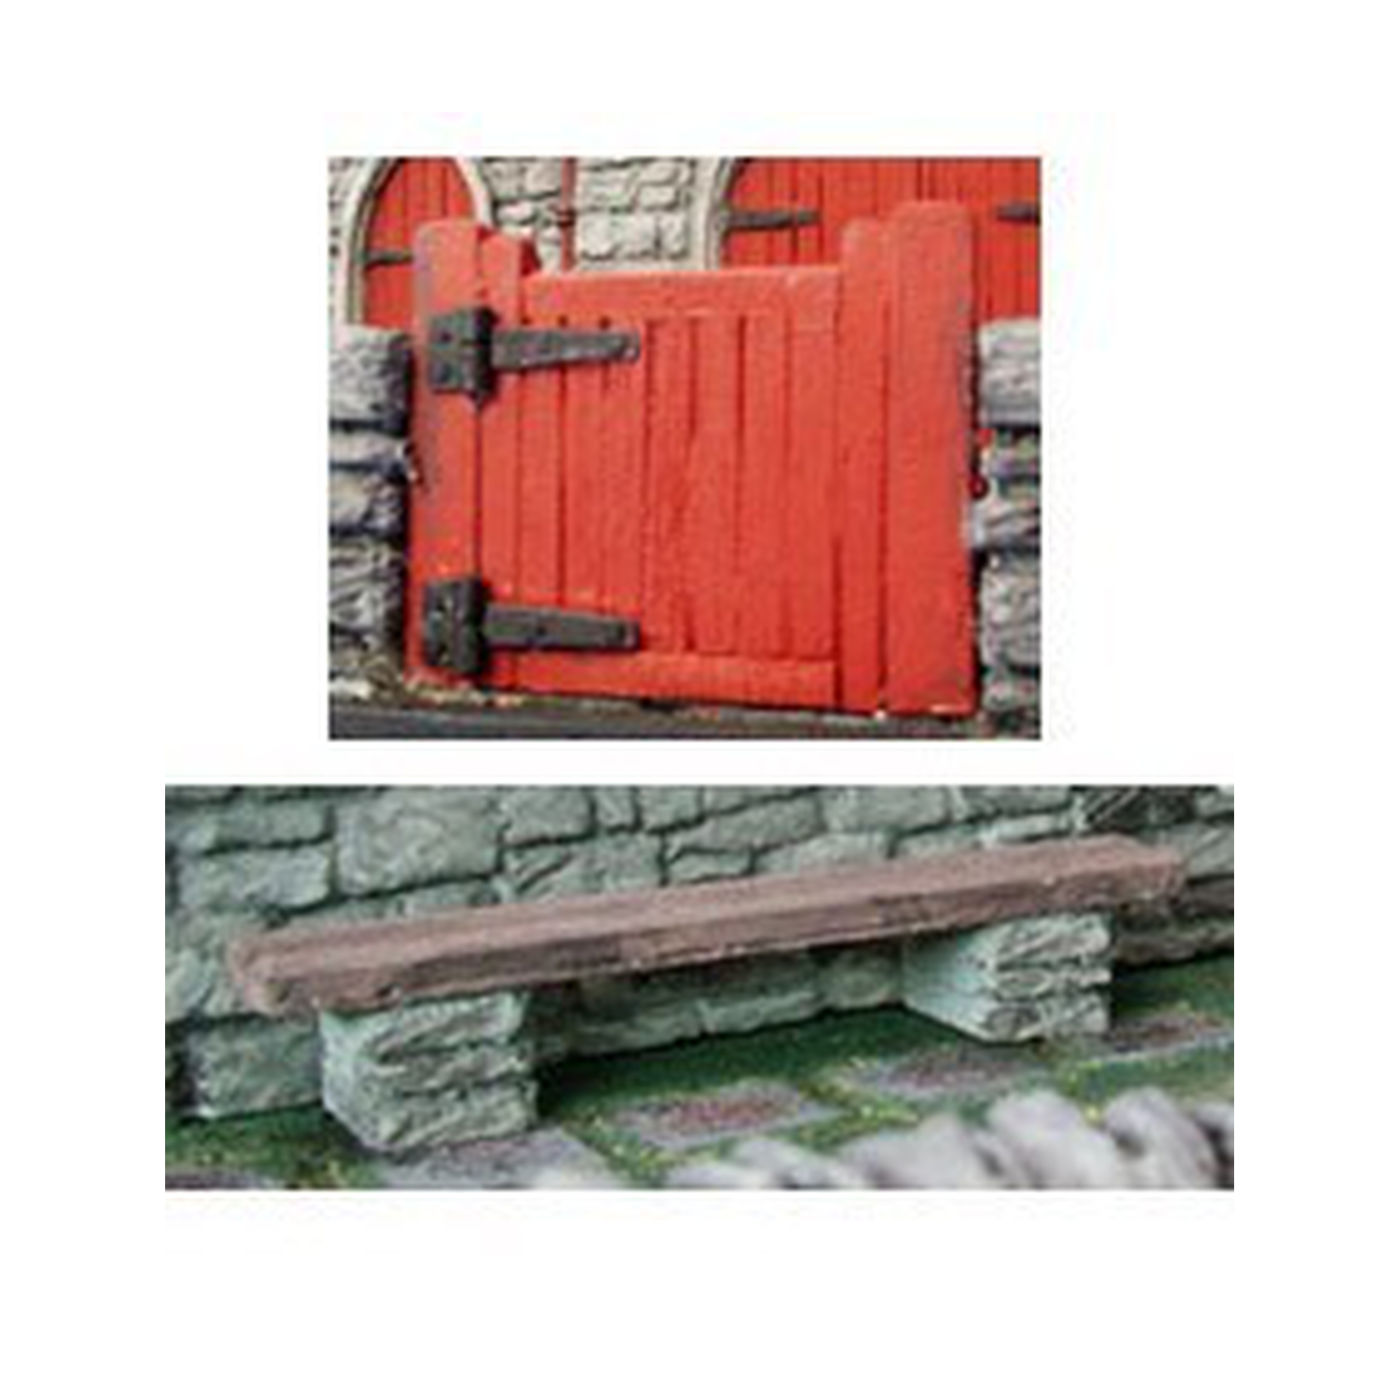 PA072 Church Gate and Bench Pack, model railway accessories, Pendle Valley Workshop, UK